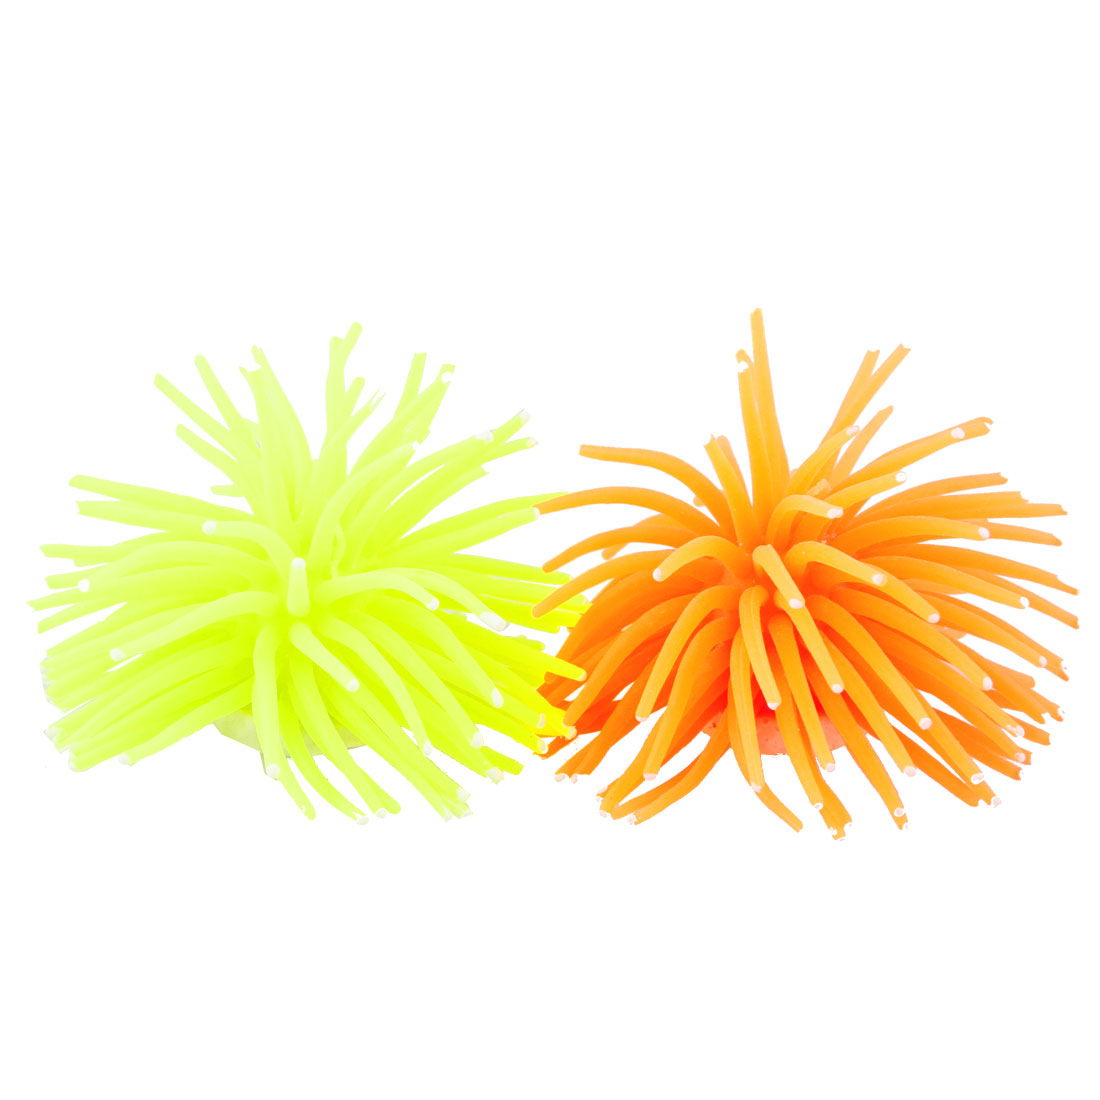 Yellowgreen Orange Artificial Silicone Coral Shaped Decoration for Fish Tank 2 Pcs